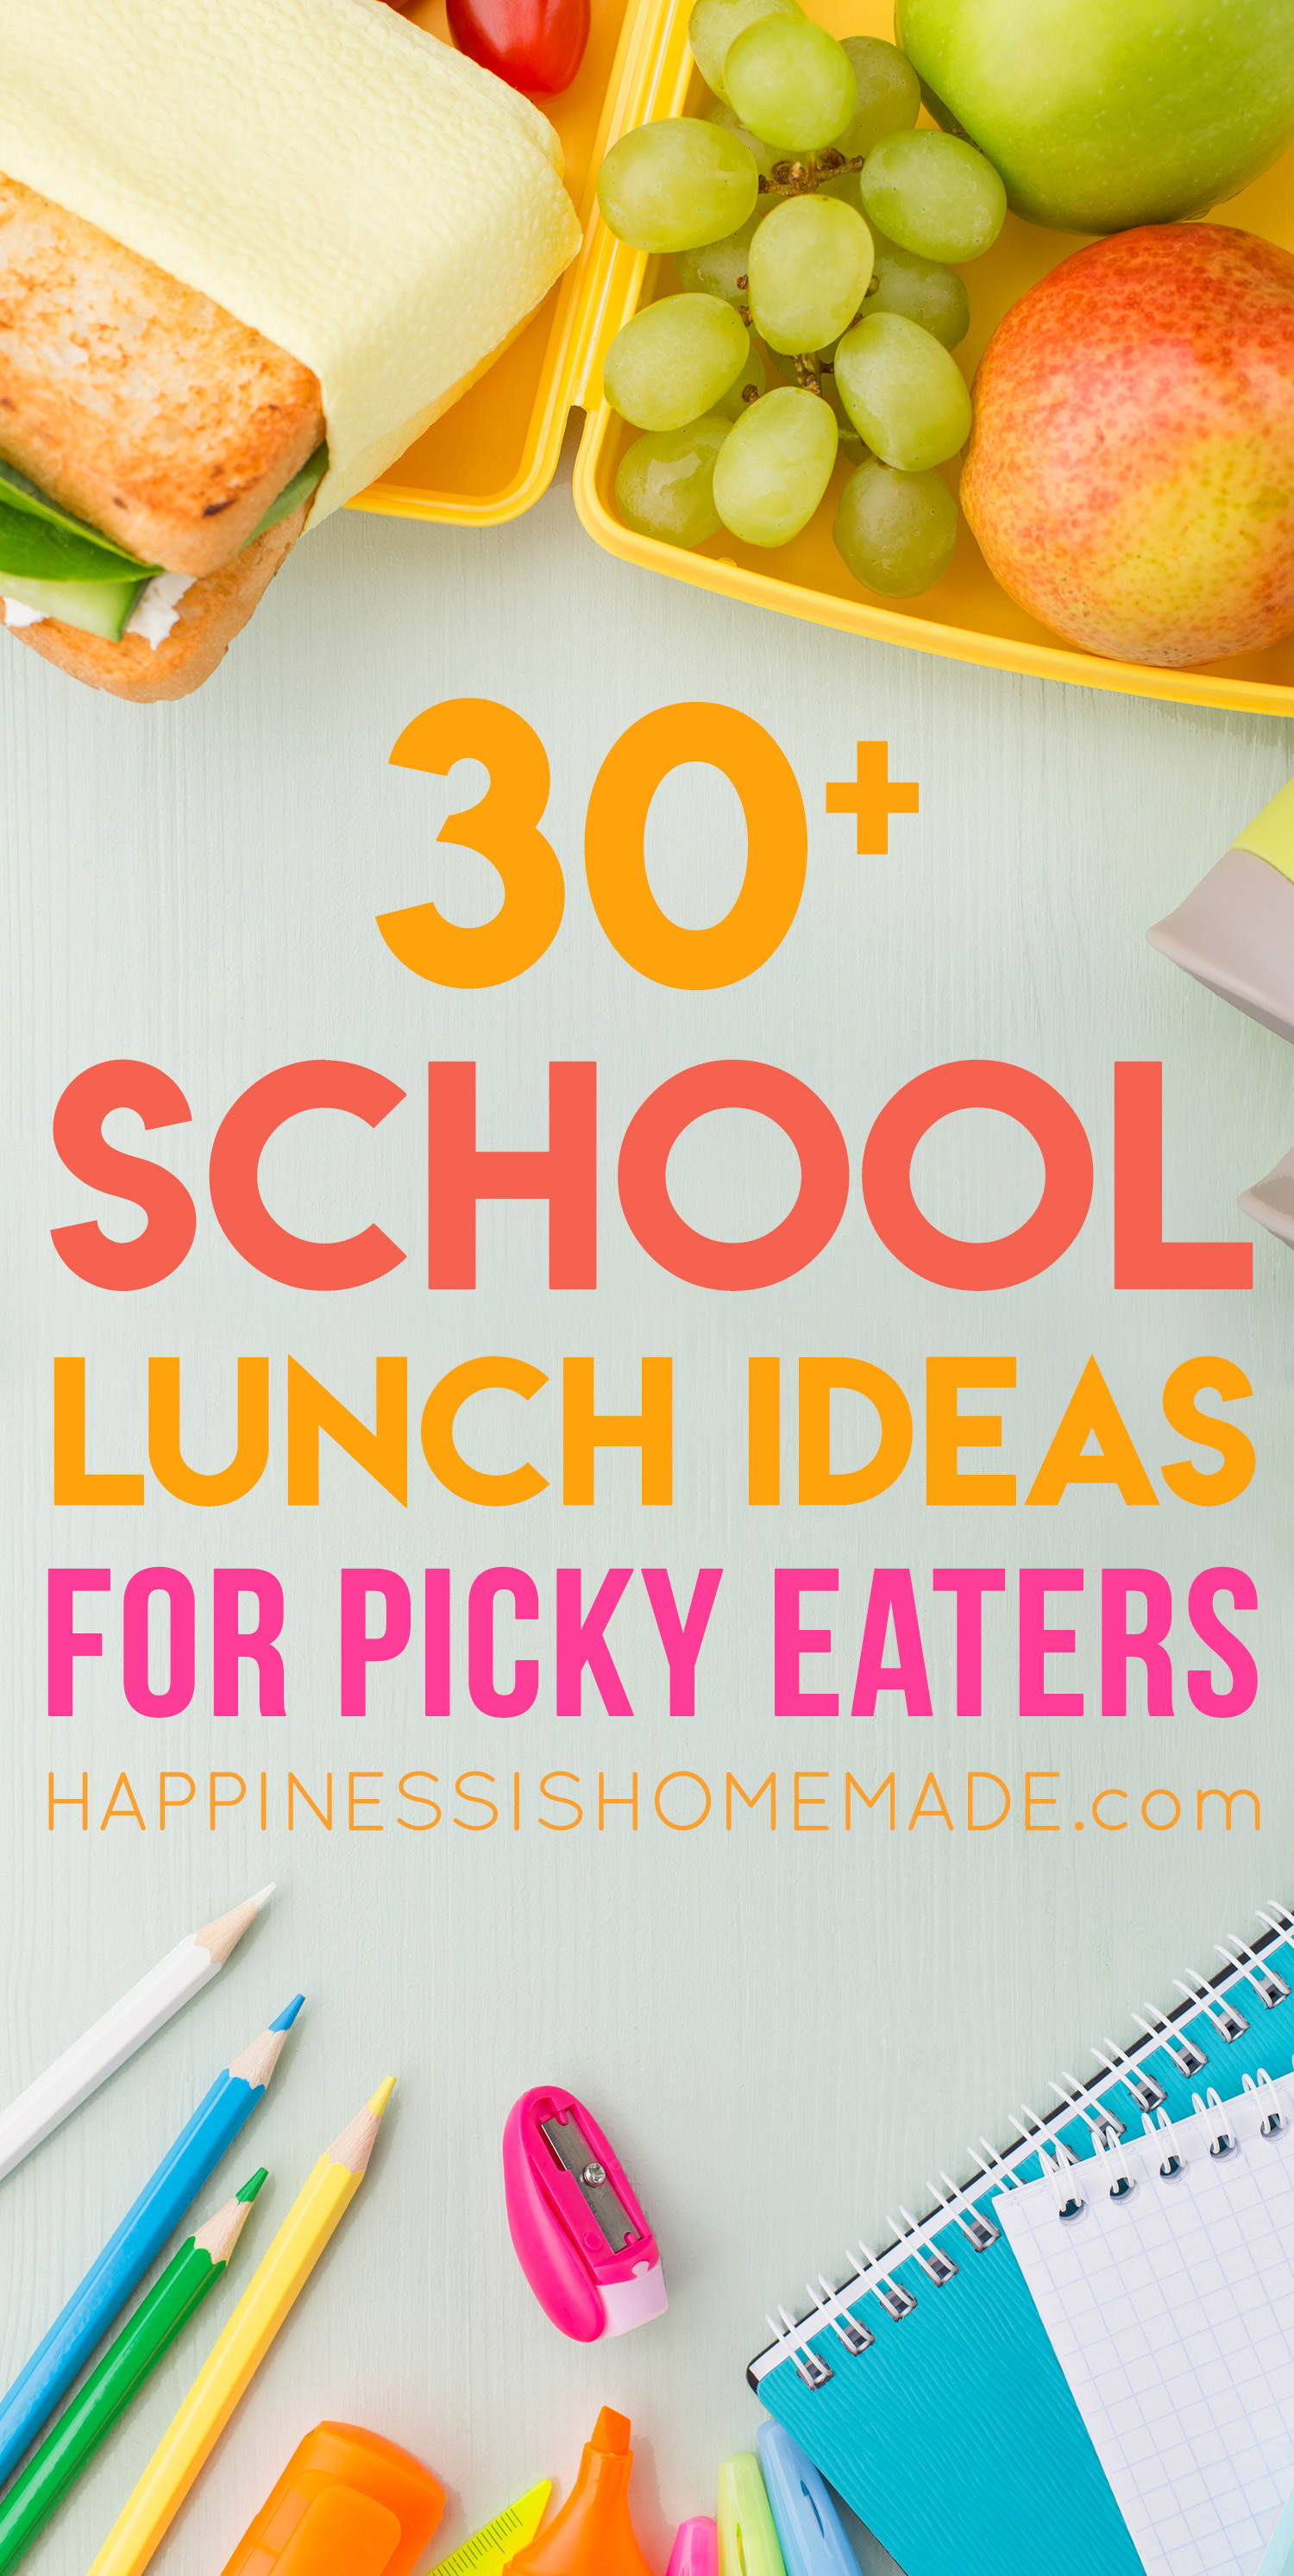 Healthy Lunches For Picky Eaters  30 School Lunch Ideas for Picky Eaters Happiness is